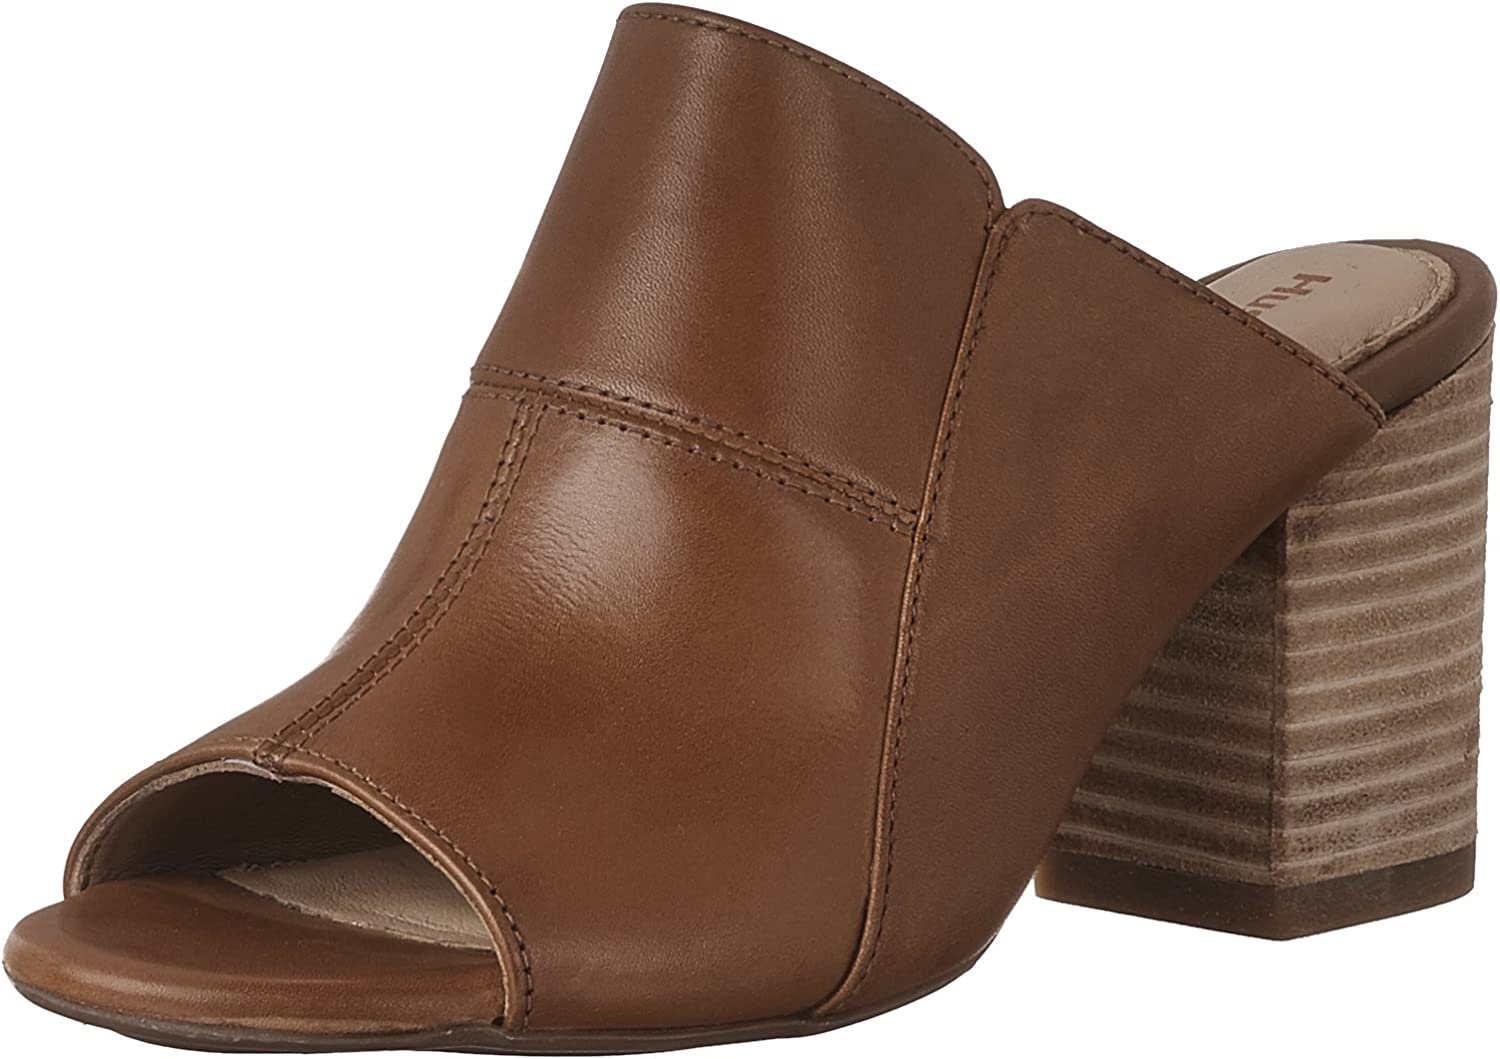 Hush Puppies Womens HW06038-236 Mules